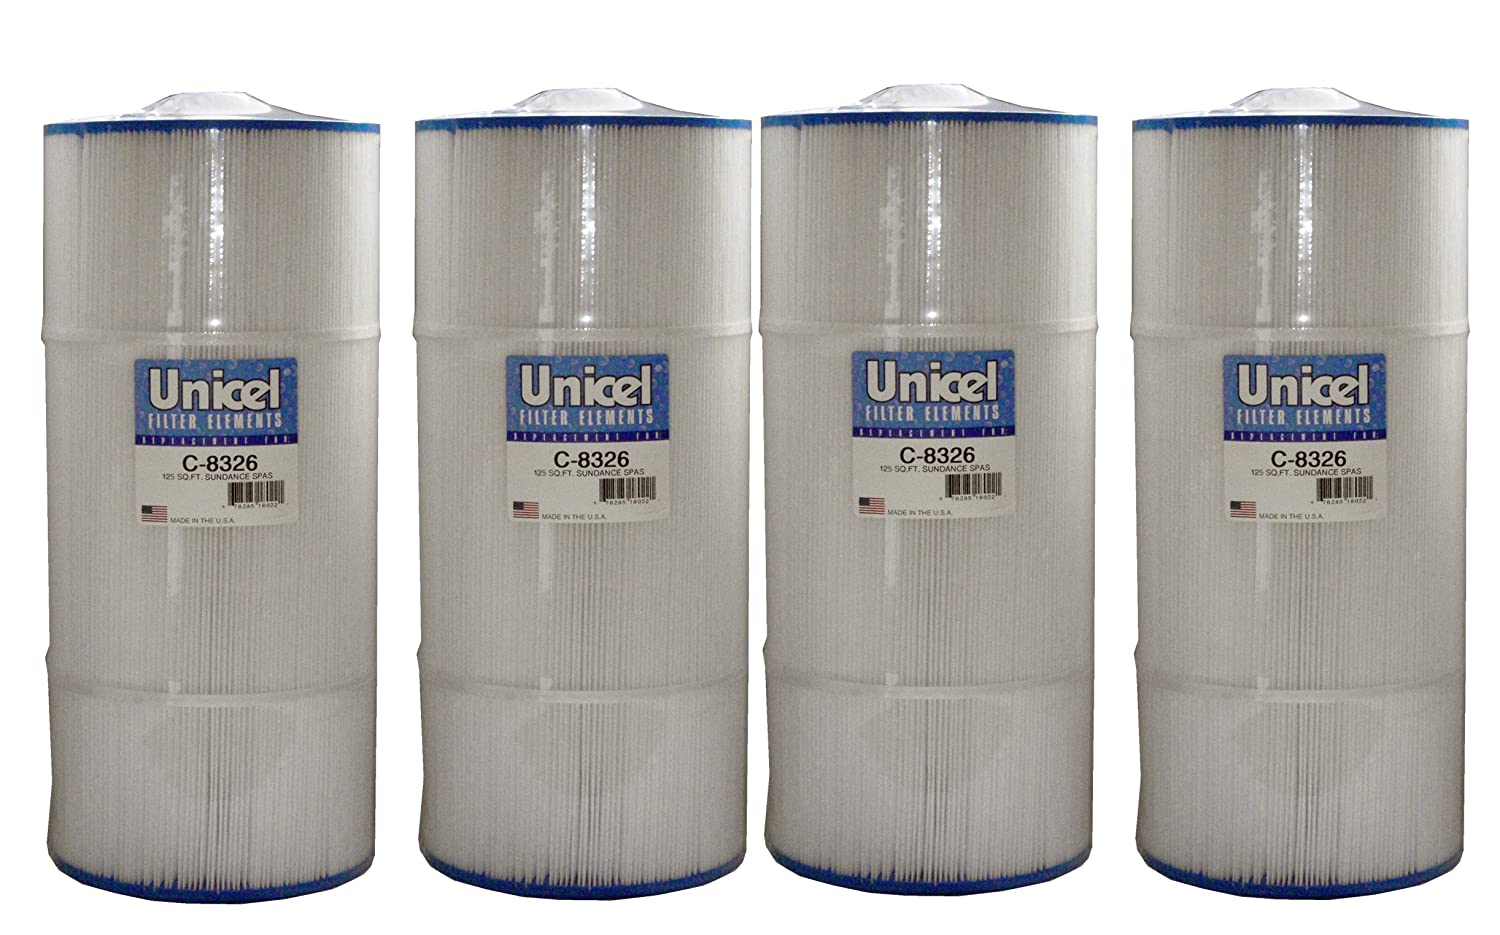 Pool Filter, Replaces Unicel # C-8326 for Swimming Pool and Spa Unicel - Distribution